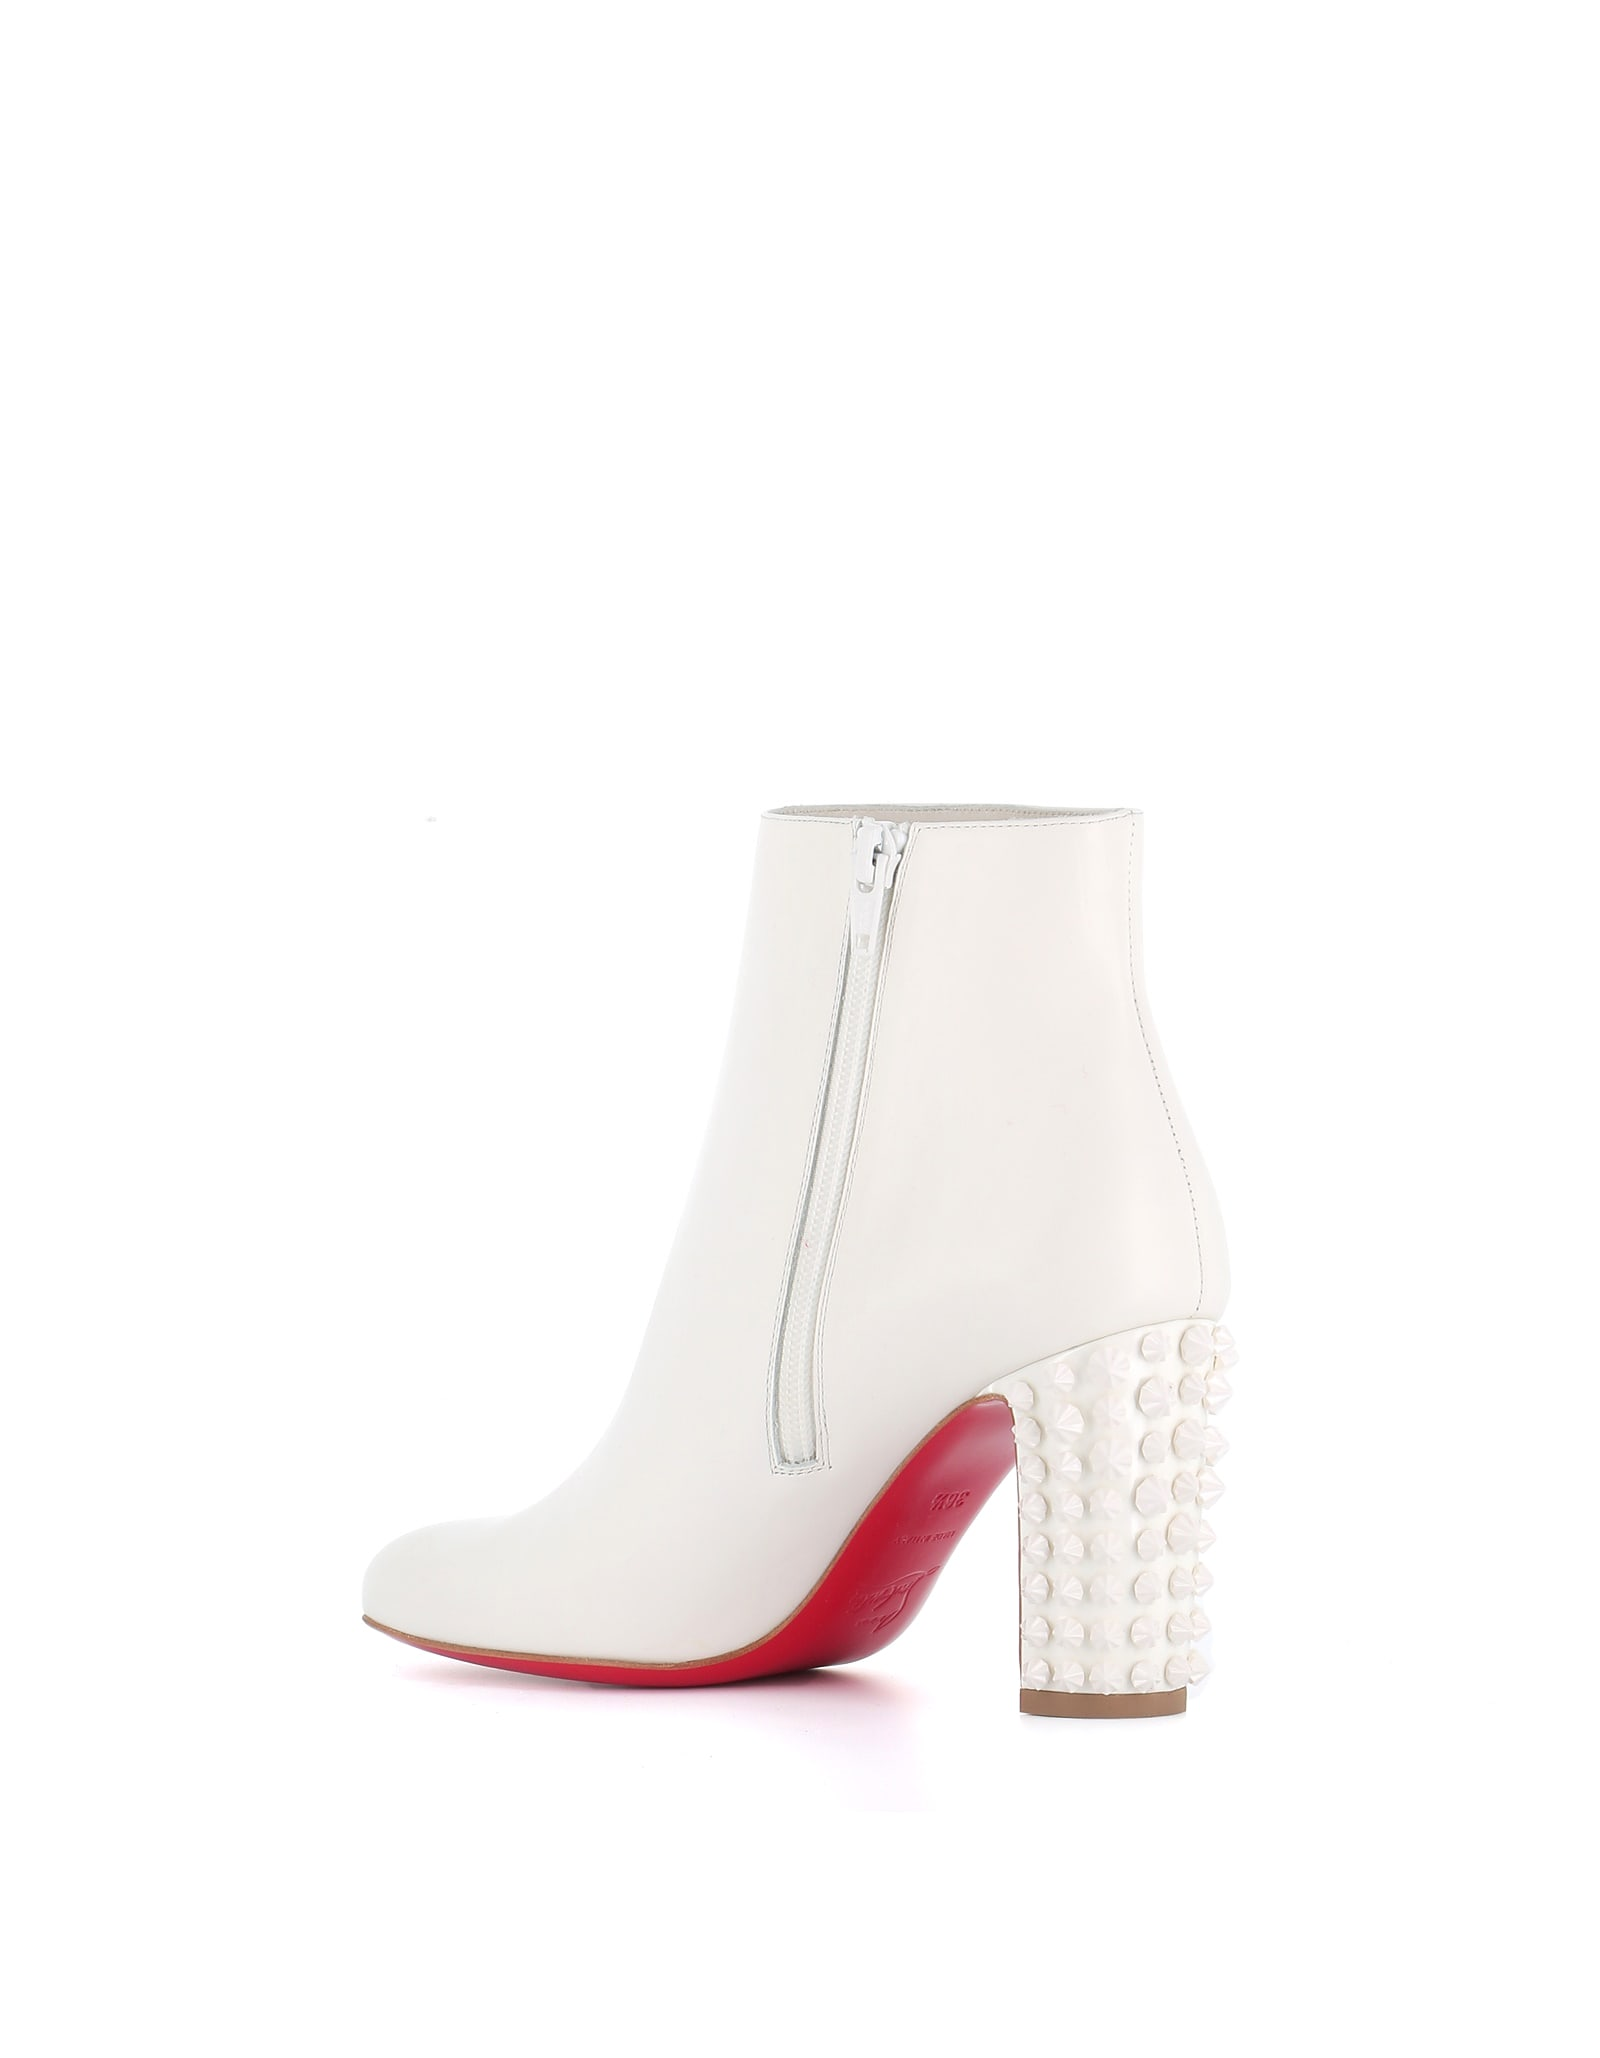 buy online 3dfcd 10b6d Christian Louboutin Ankle Boots